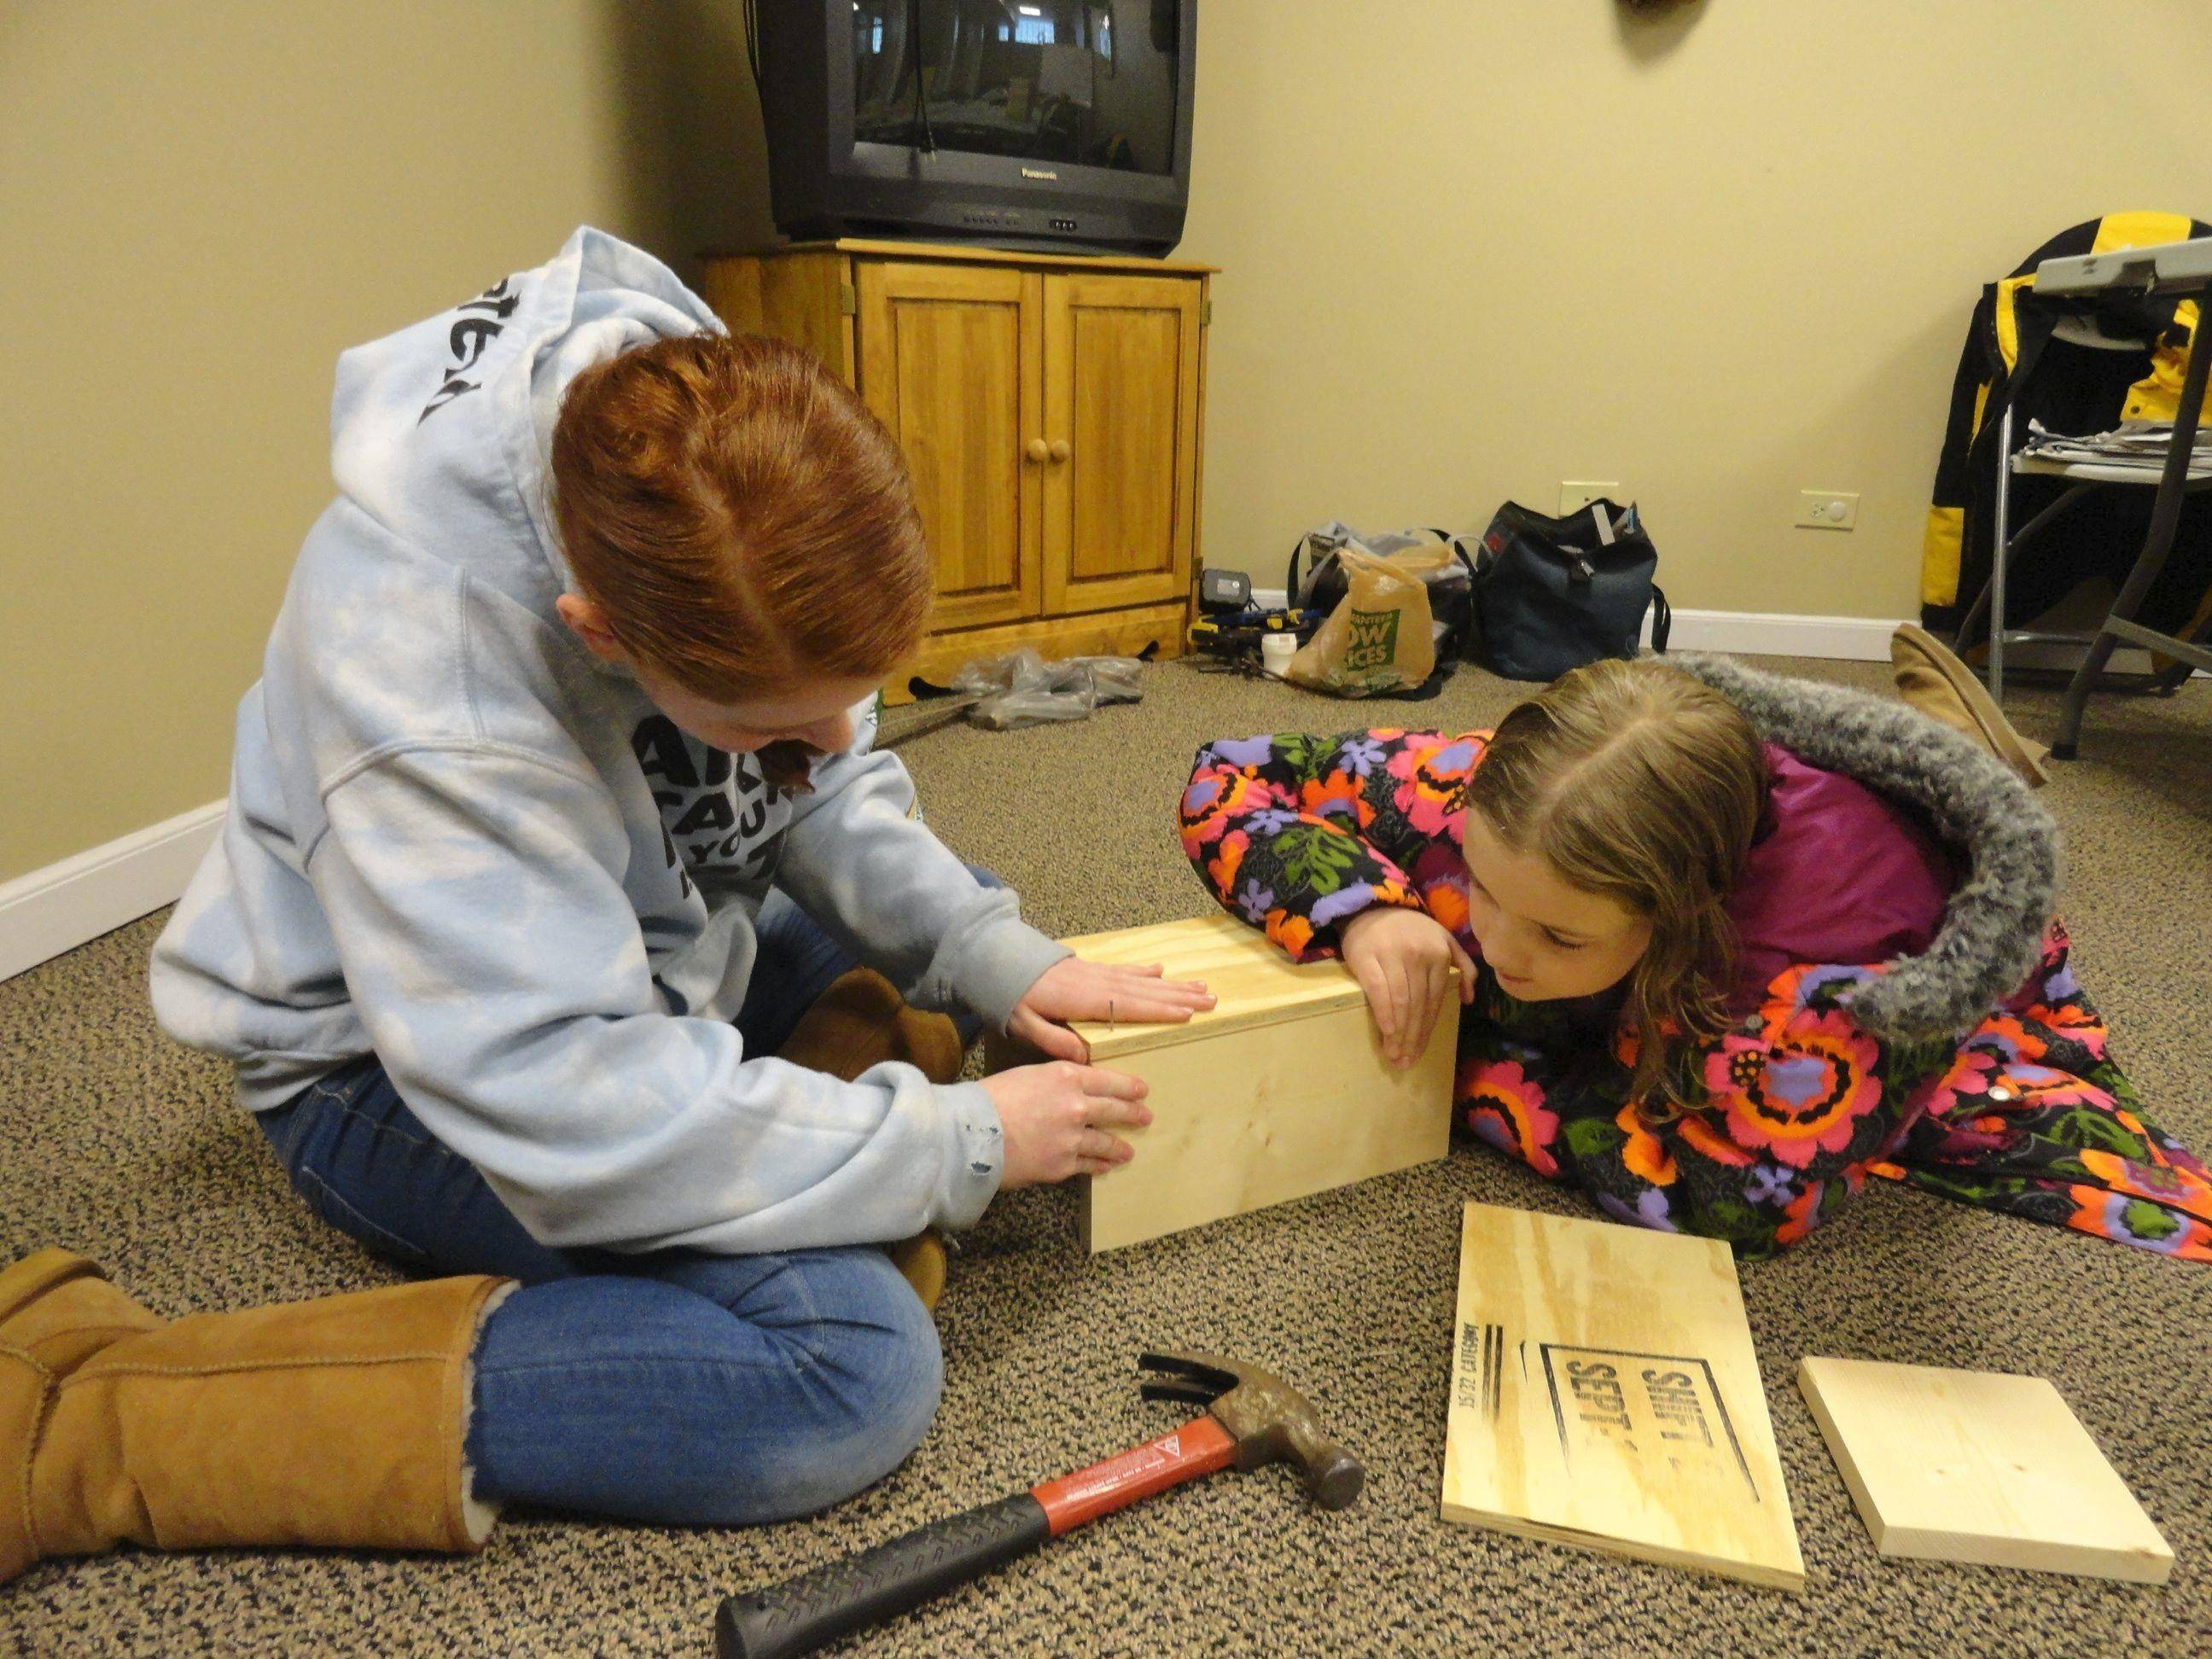 Fox Valley Jewish School students Zoe and Jessica, left, Steele build a squirrel box for the furry residents of Fox Valley Wildlife Center in Elburn.